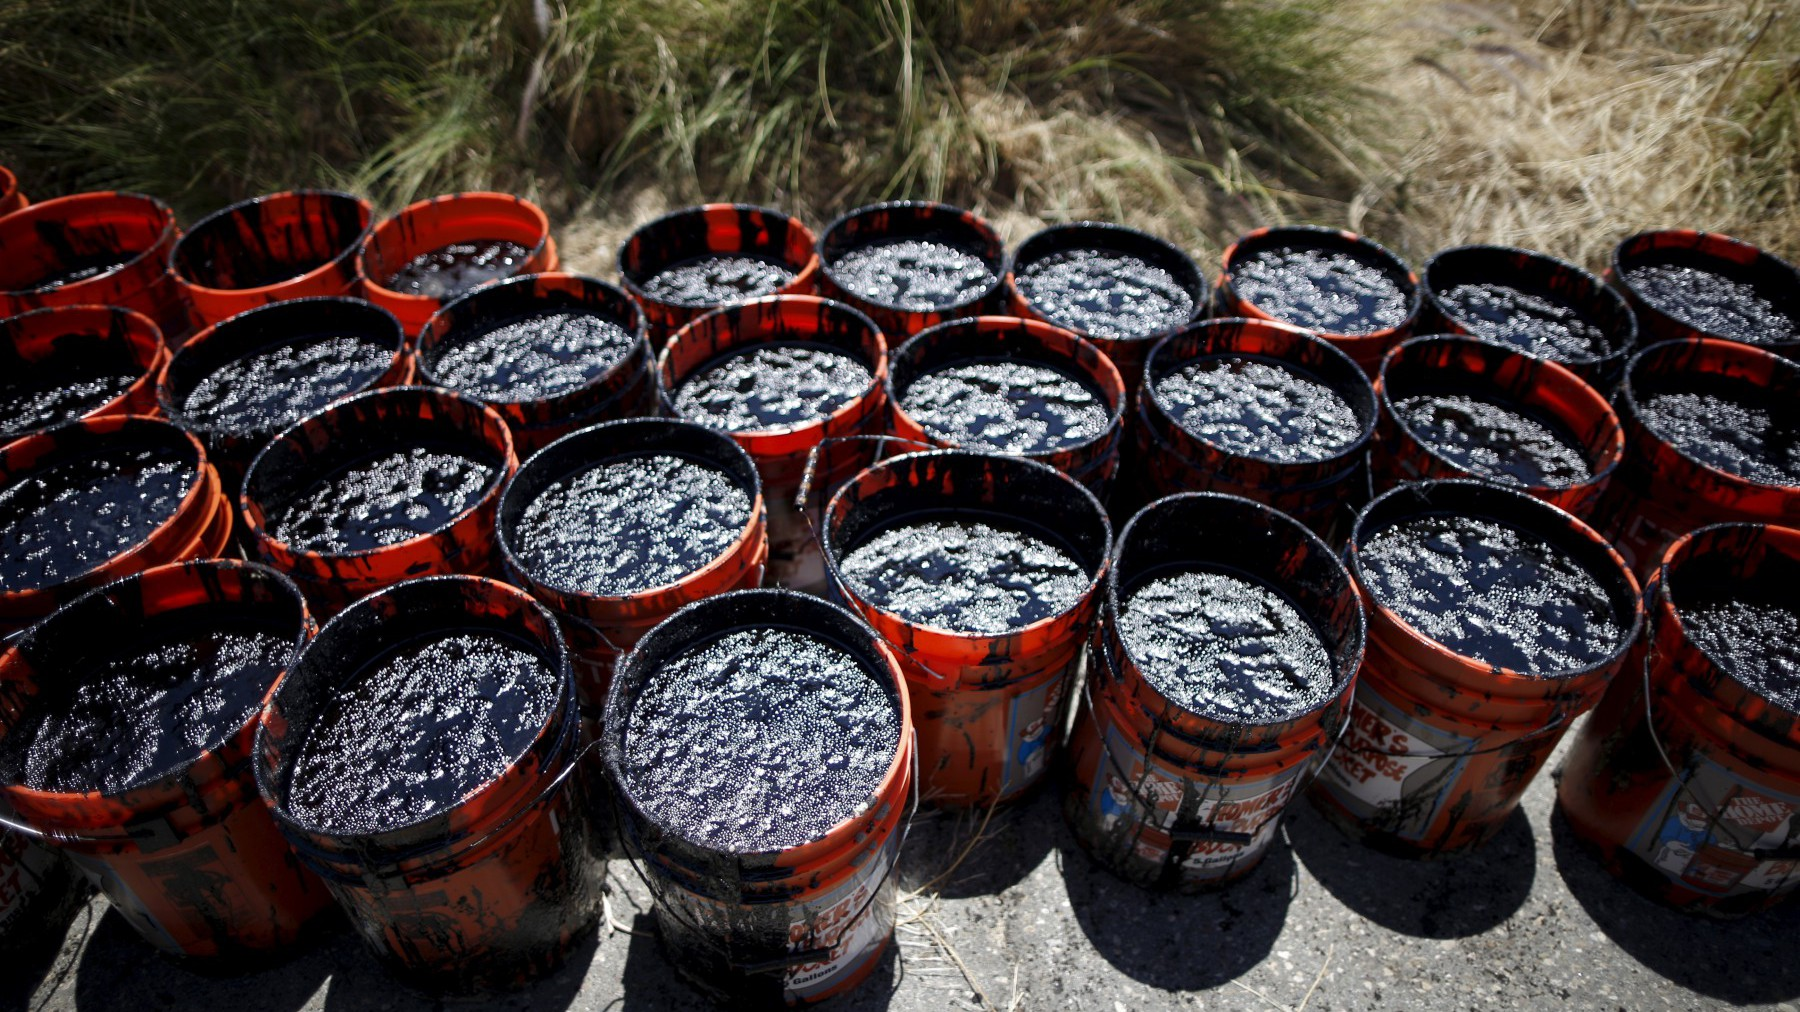 Buckets of oil volunteers carried from an oil slick along the coast of Refugio State Beach are seen in Goleta, California.